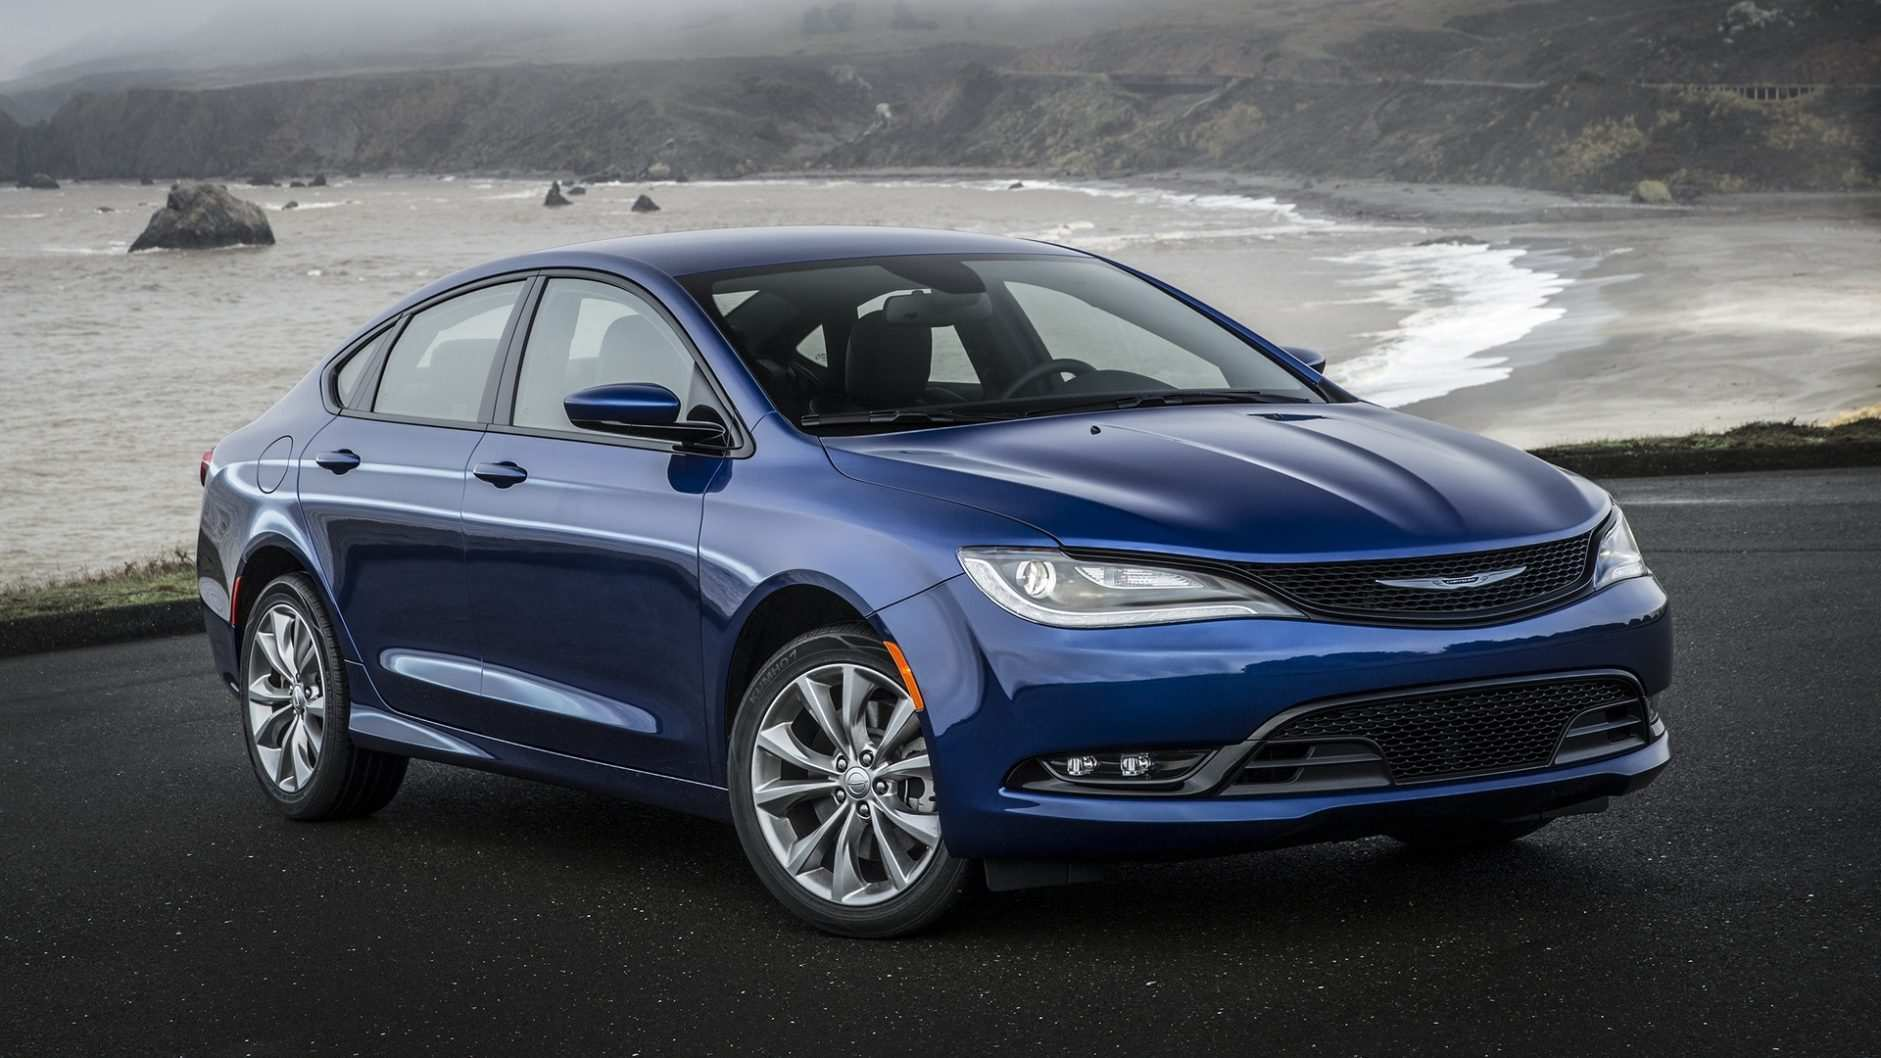 91 All New 2019 Chrysler 200 Performance